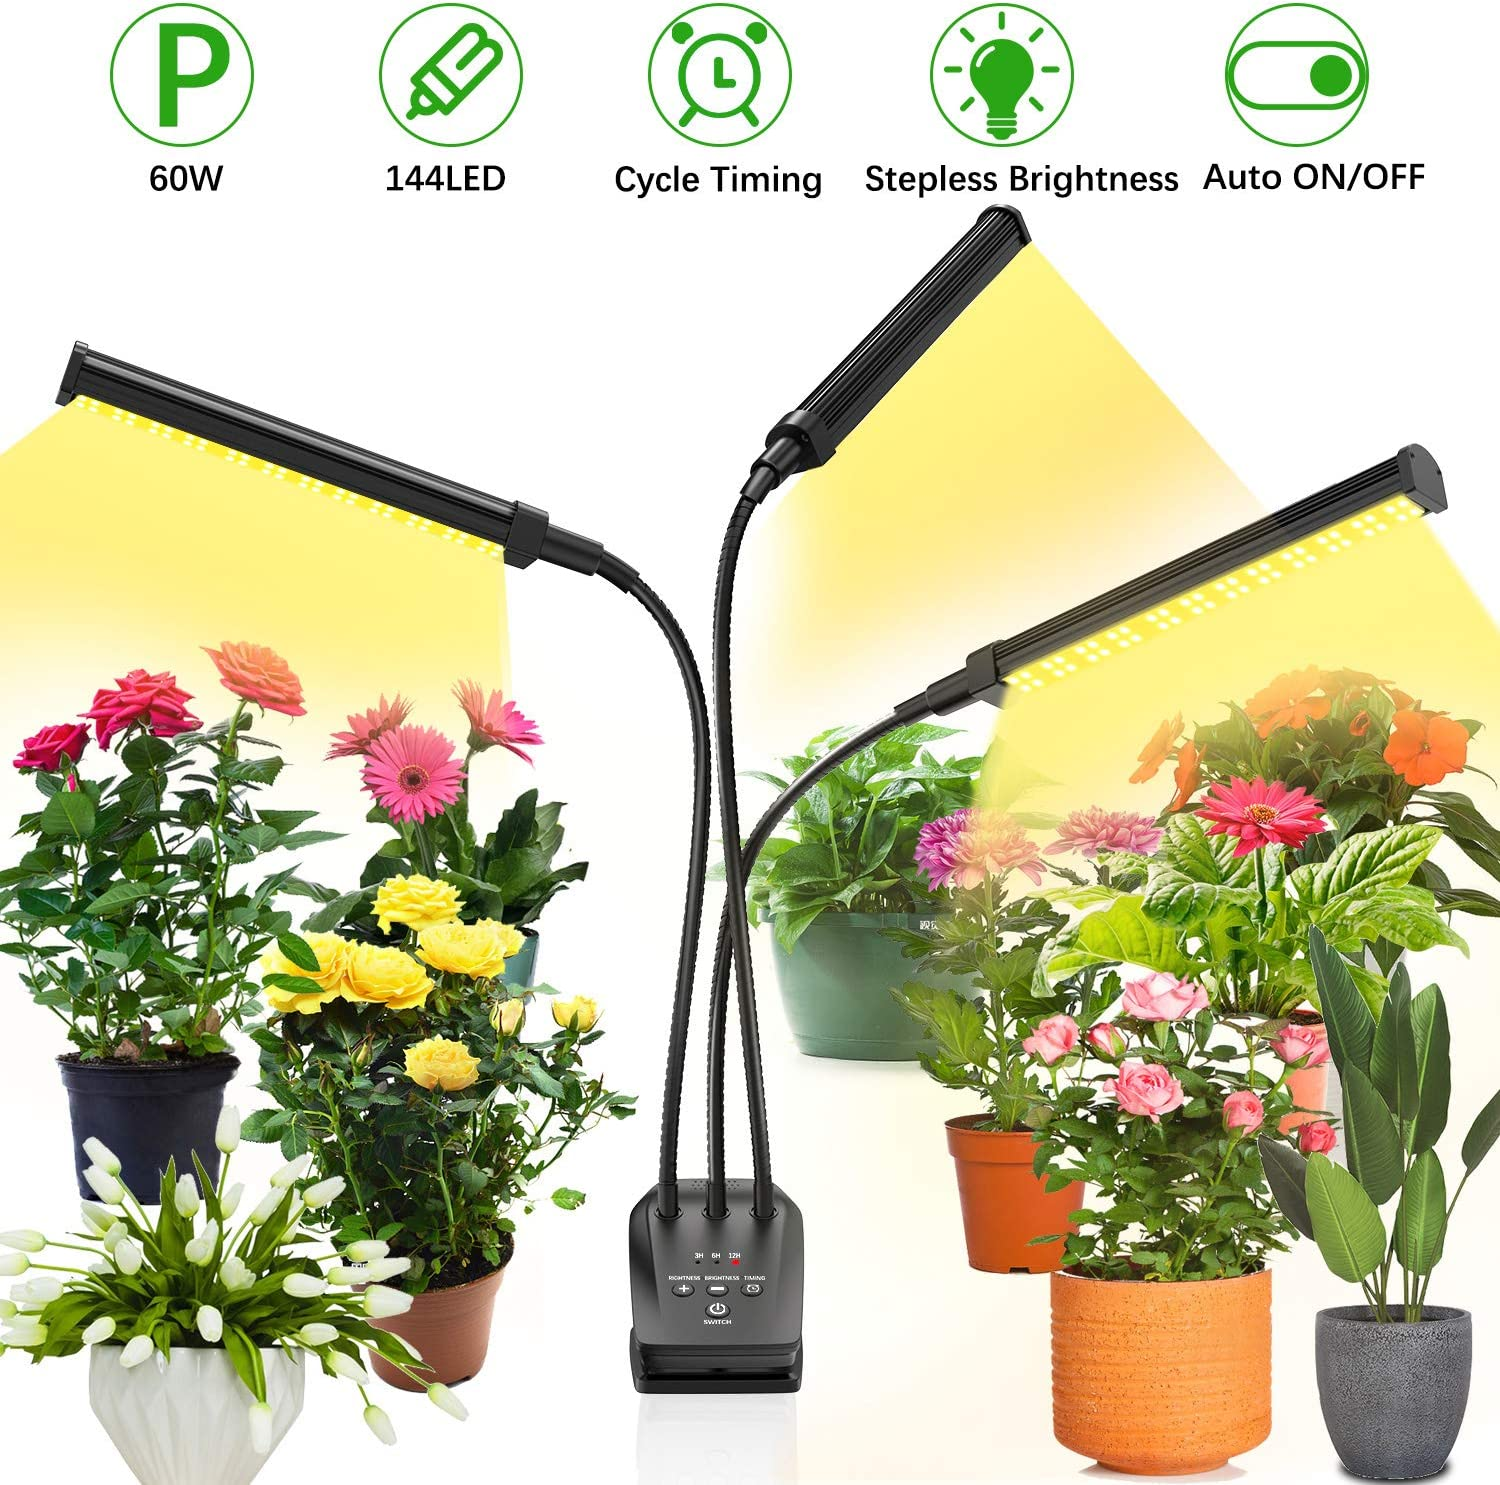 Grow Light for Indoor Plant,BEIEN 60W 144 LED Auto ON Off Timer Full Spectrum Plant Lights 3 6 12H Cycle Timing Stepless Dimmable Brightness 4 Switch Modes,Tri Head Adjustable Gooseneck